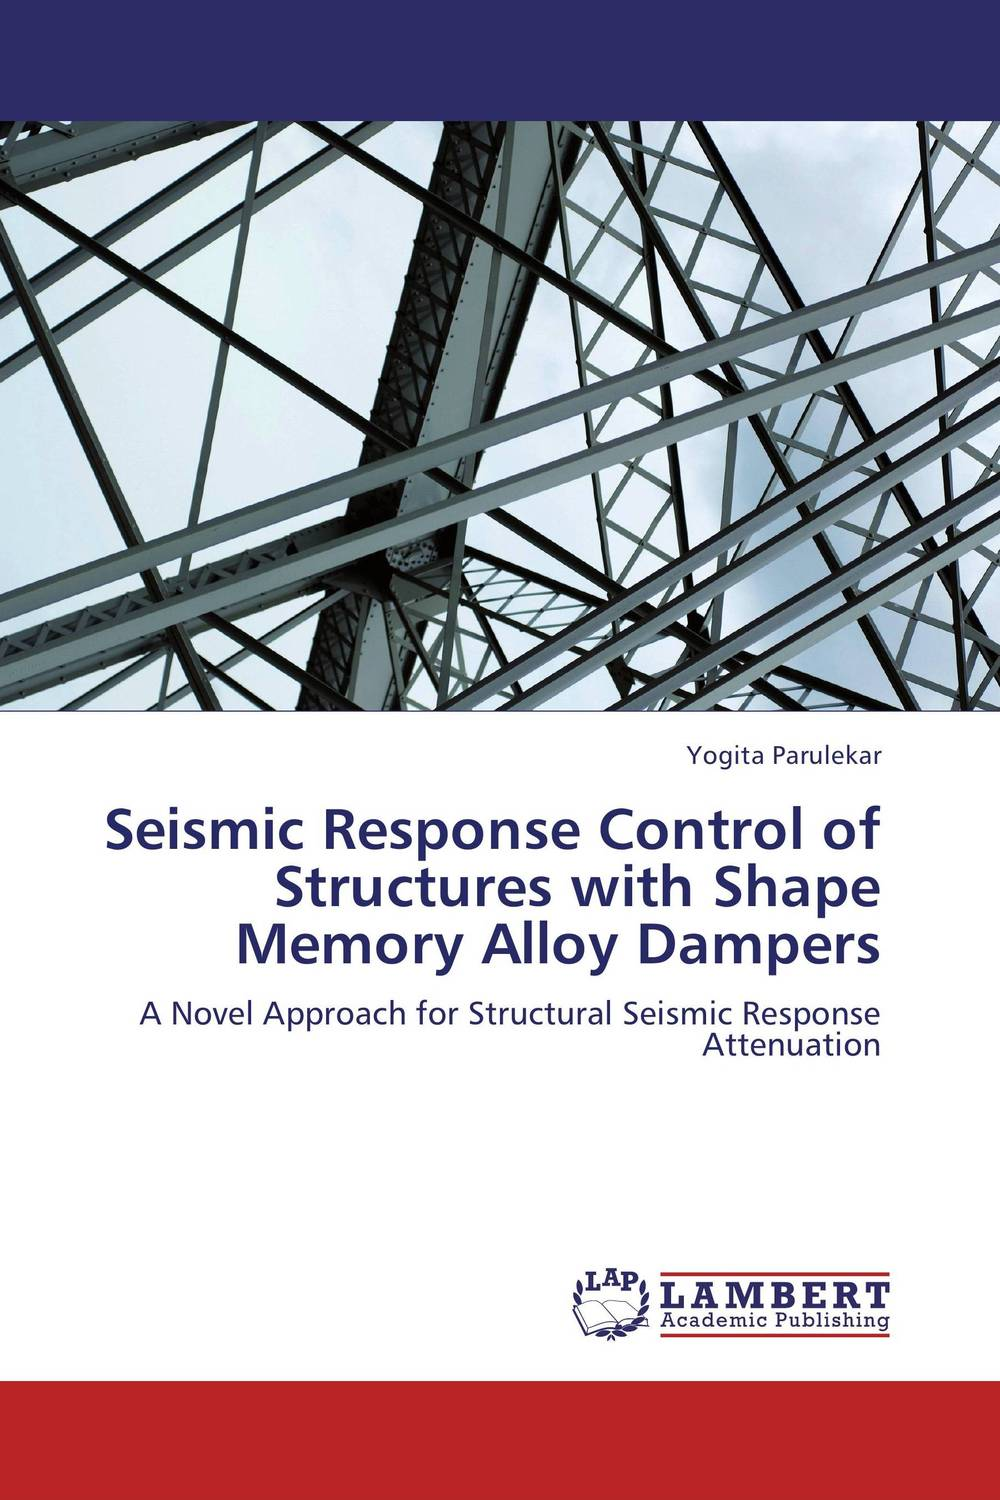 Seismic Response Control of Structures with Shape Memory Alloy Dampers stability and ductility of steel structures sdss 99